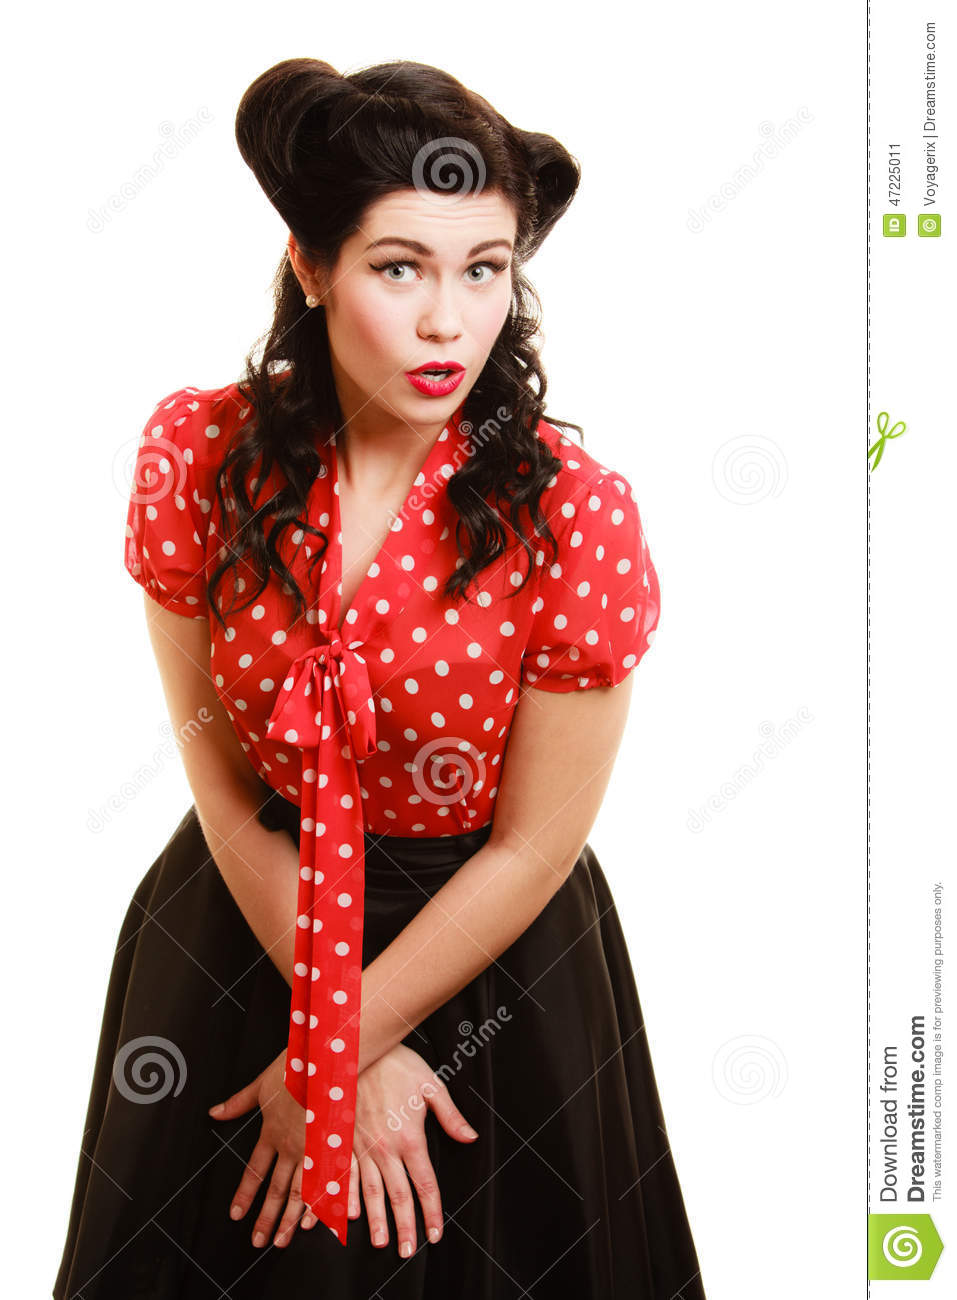 Pin Up Girl Vintage. Beautiful Woman Pinup Style Portrait